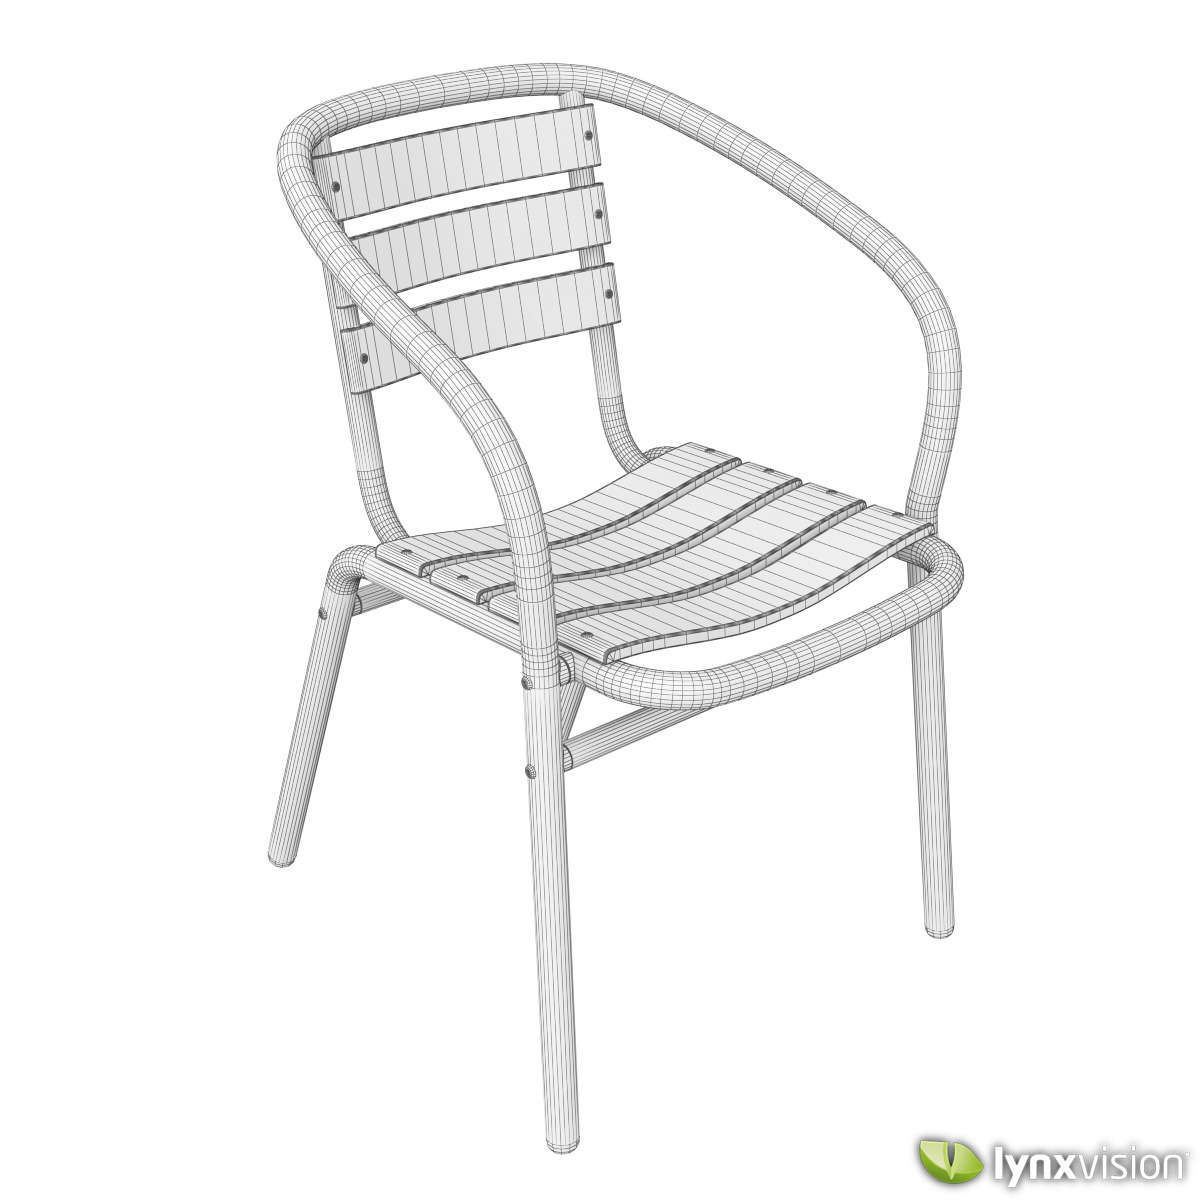 outdoor aluminum chairs office that recline collection 3d cgtrader model max obj mtl fbx c4d lwo lw lws lxo lxl